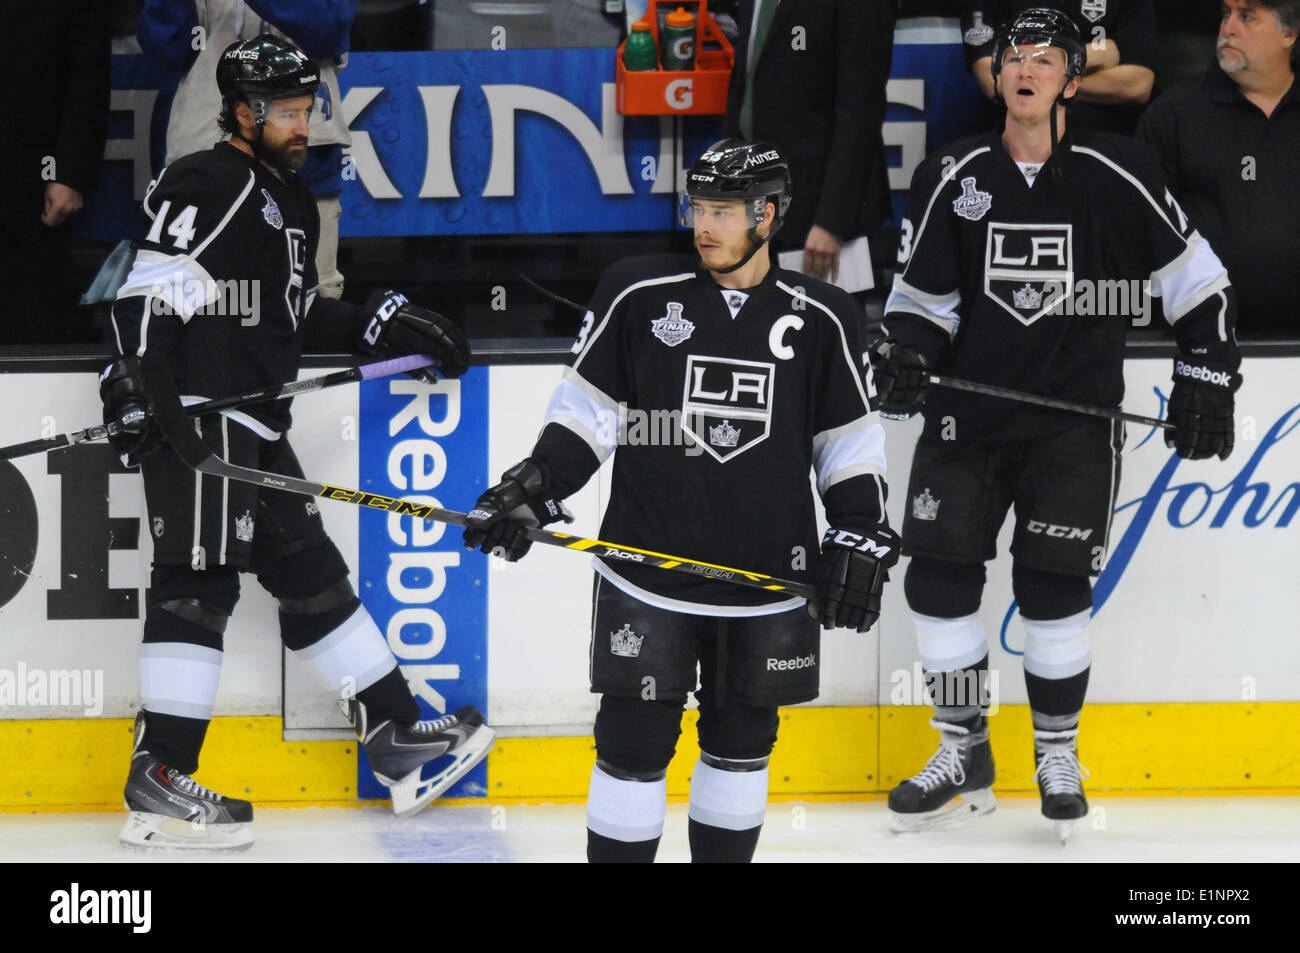 Staples Center, Los Angeles, California, USA. 07th June, 2014. Los Angeles Kings Right Wing Justin Williams (14) [2150], Los Angeles Kings Right Wing Dustin Brown (23) [2289], and Los Angeles Kings Right Wing Tyler Toffoli (73) [8400] during pre-skate prior to game 2 of the Stanley Cup Final between the New York Rangers and the Los Angeles Kings at Staples Center in Los Angeles, CA. - Stock Image